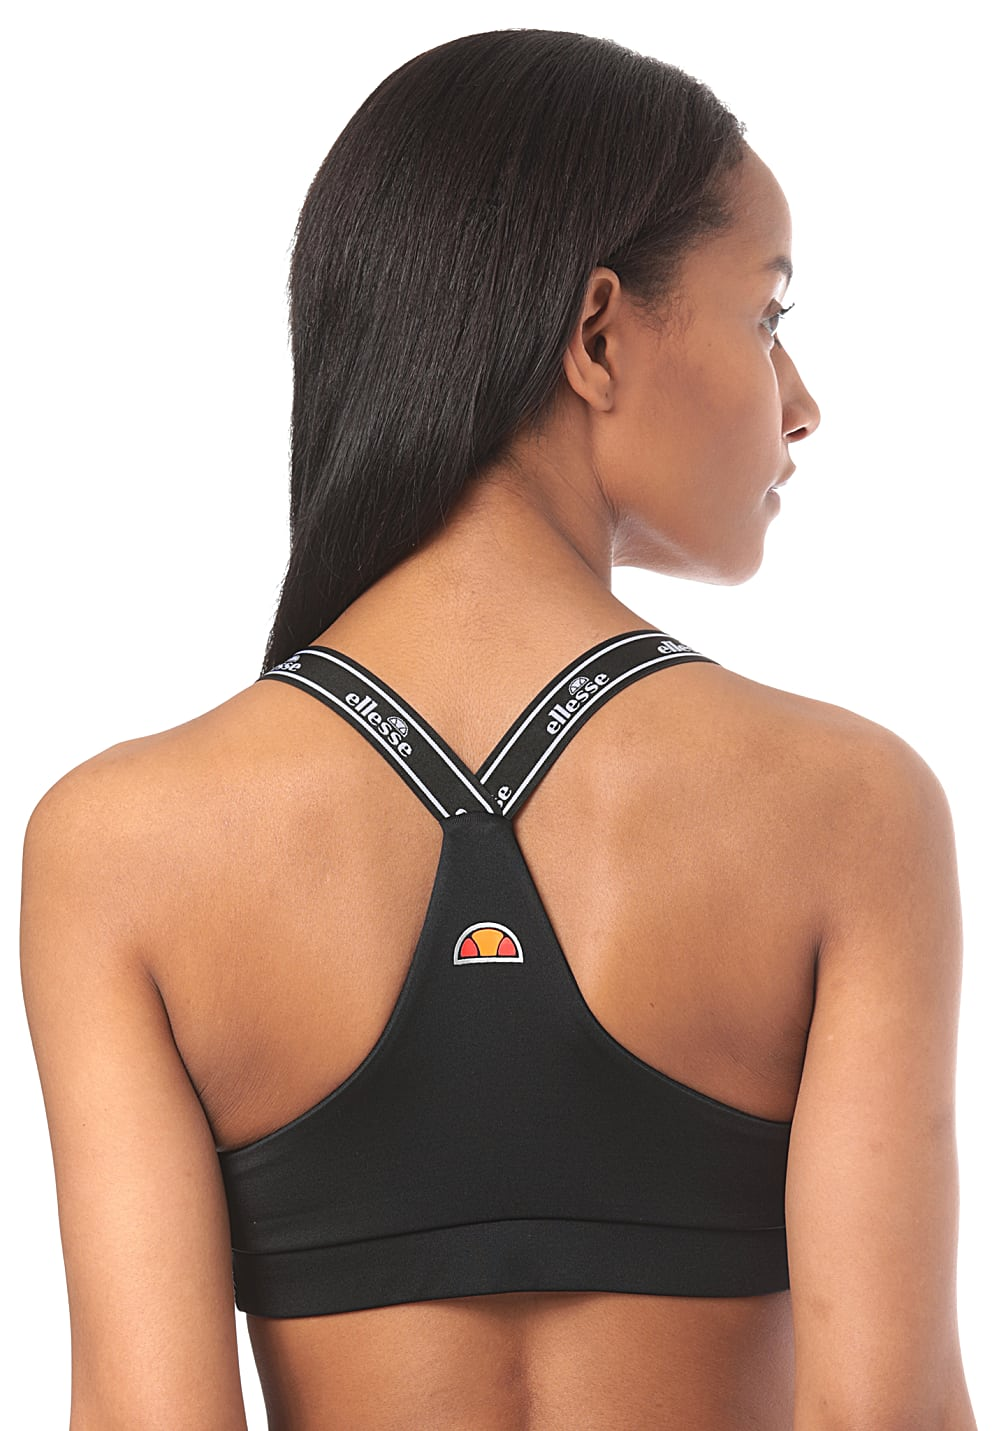 e143d7eb7a ... Sports Bra · ELLESSE Juno - Bra for Women - Black. Back to Overview. 1   2. Previous